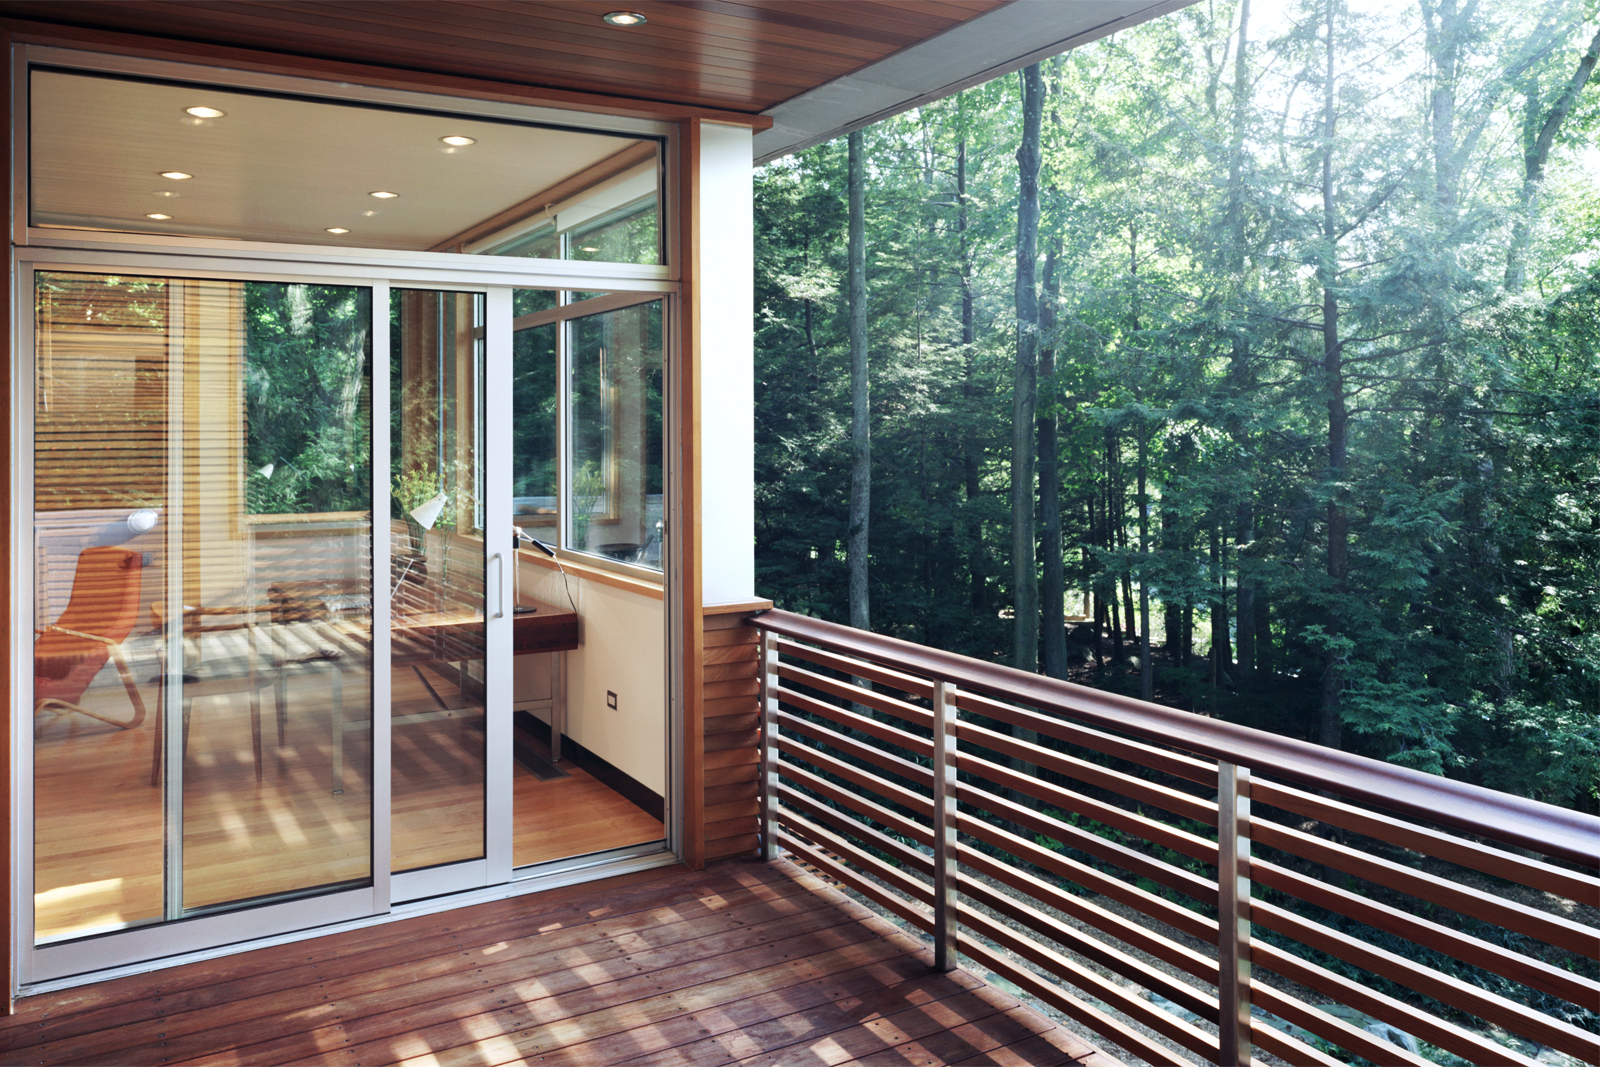 06-res4-resolution-4-architecture-modern-home-residential-lakeside-house-exterior-terrace-porch.jpg